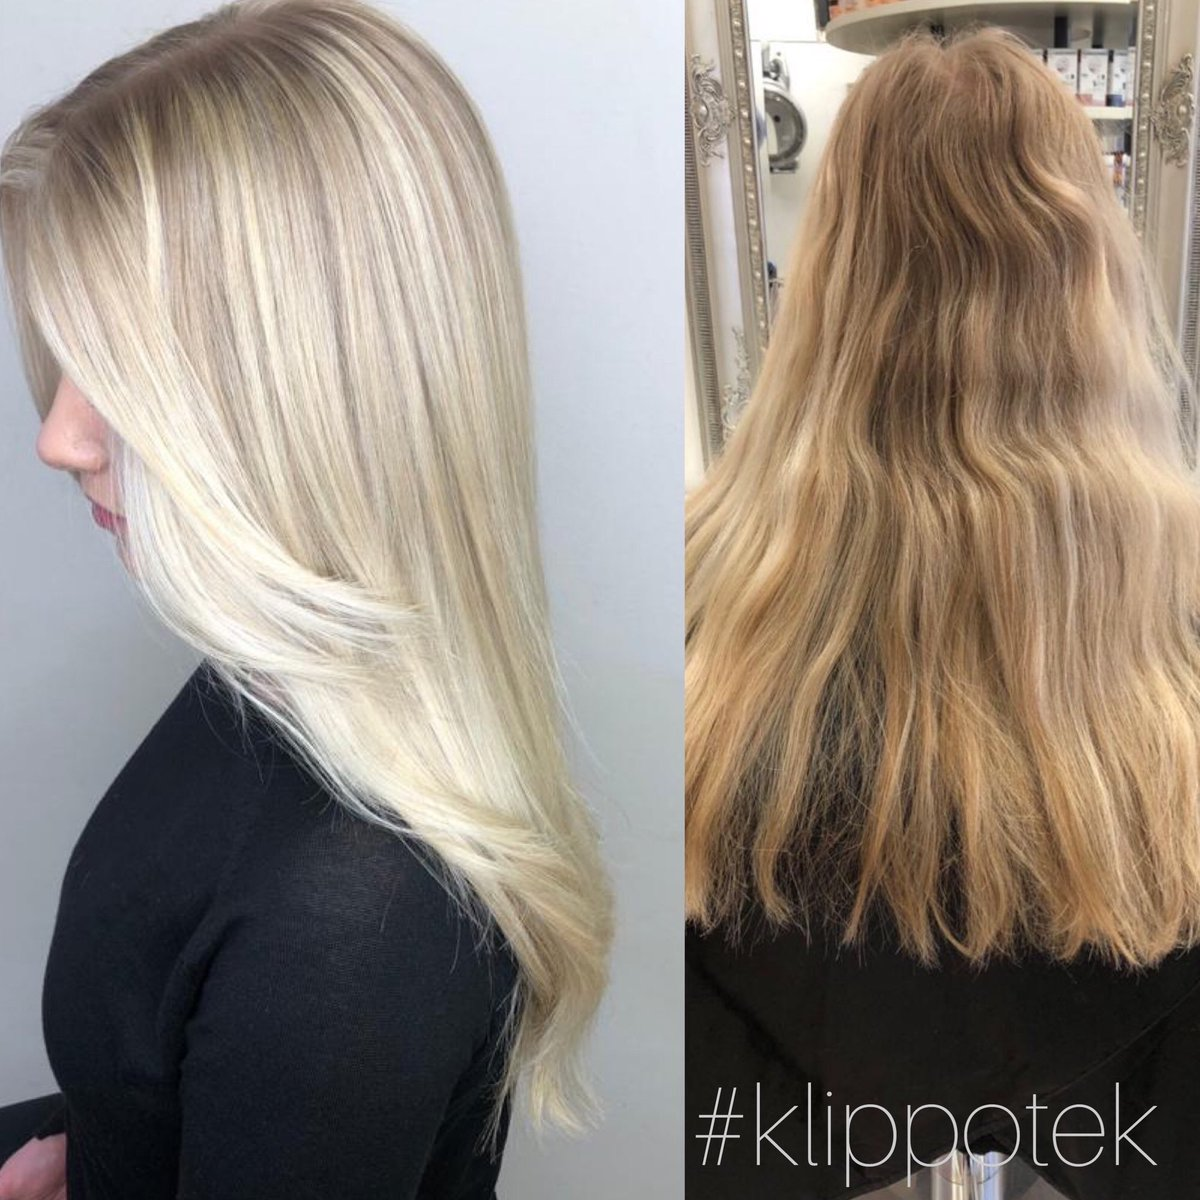 #klippotek #frisör #style #fashion #balayage #hairstyle #hairdresser #hair #ombrehair #ombre #instafollow #blending #beauty #frisörstockholm #farsta #stockholm #trångsund #trångsundsklippotek #wellahair #mywellastore #wellaeducation #modernsalon #behindthechair #wellalife